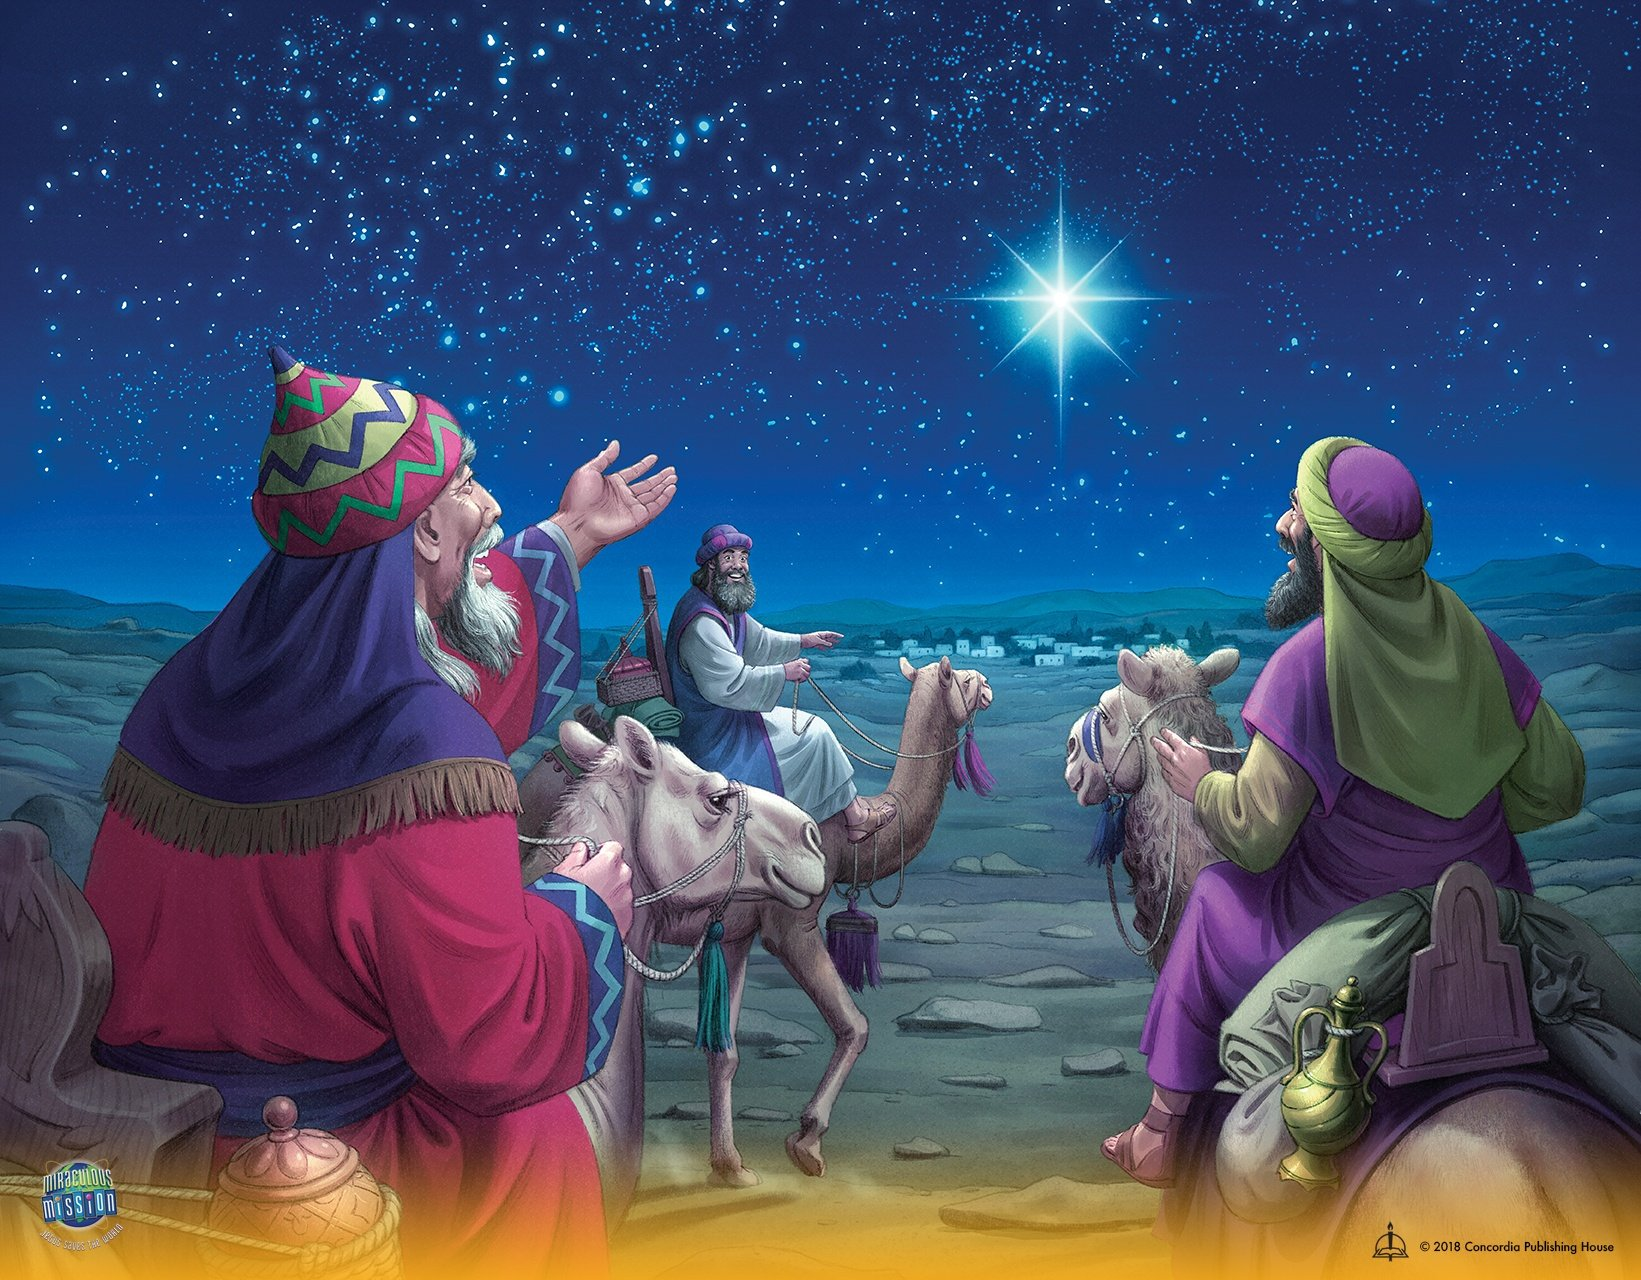 Bible Lesson 3 - Jesus the Savior is Born